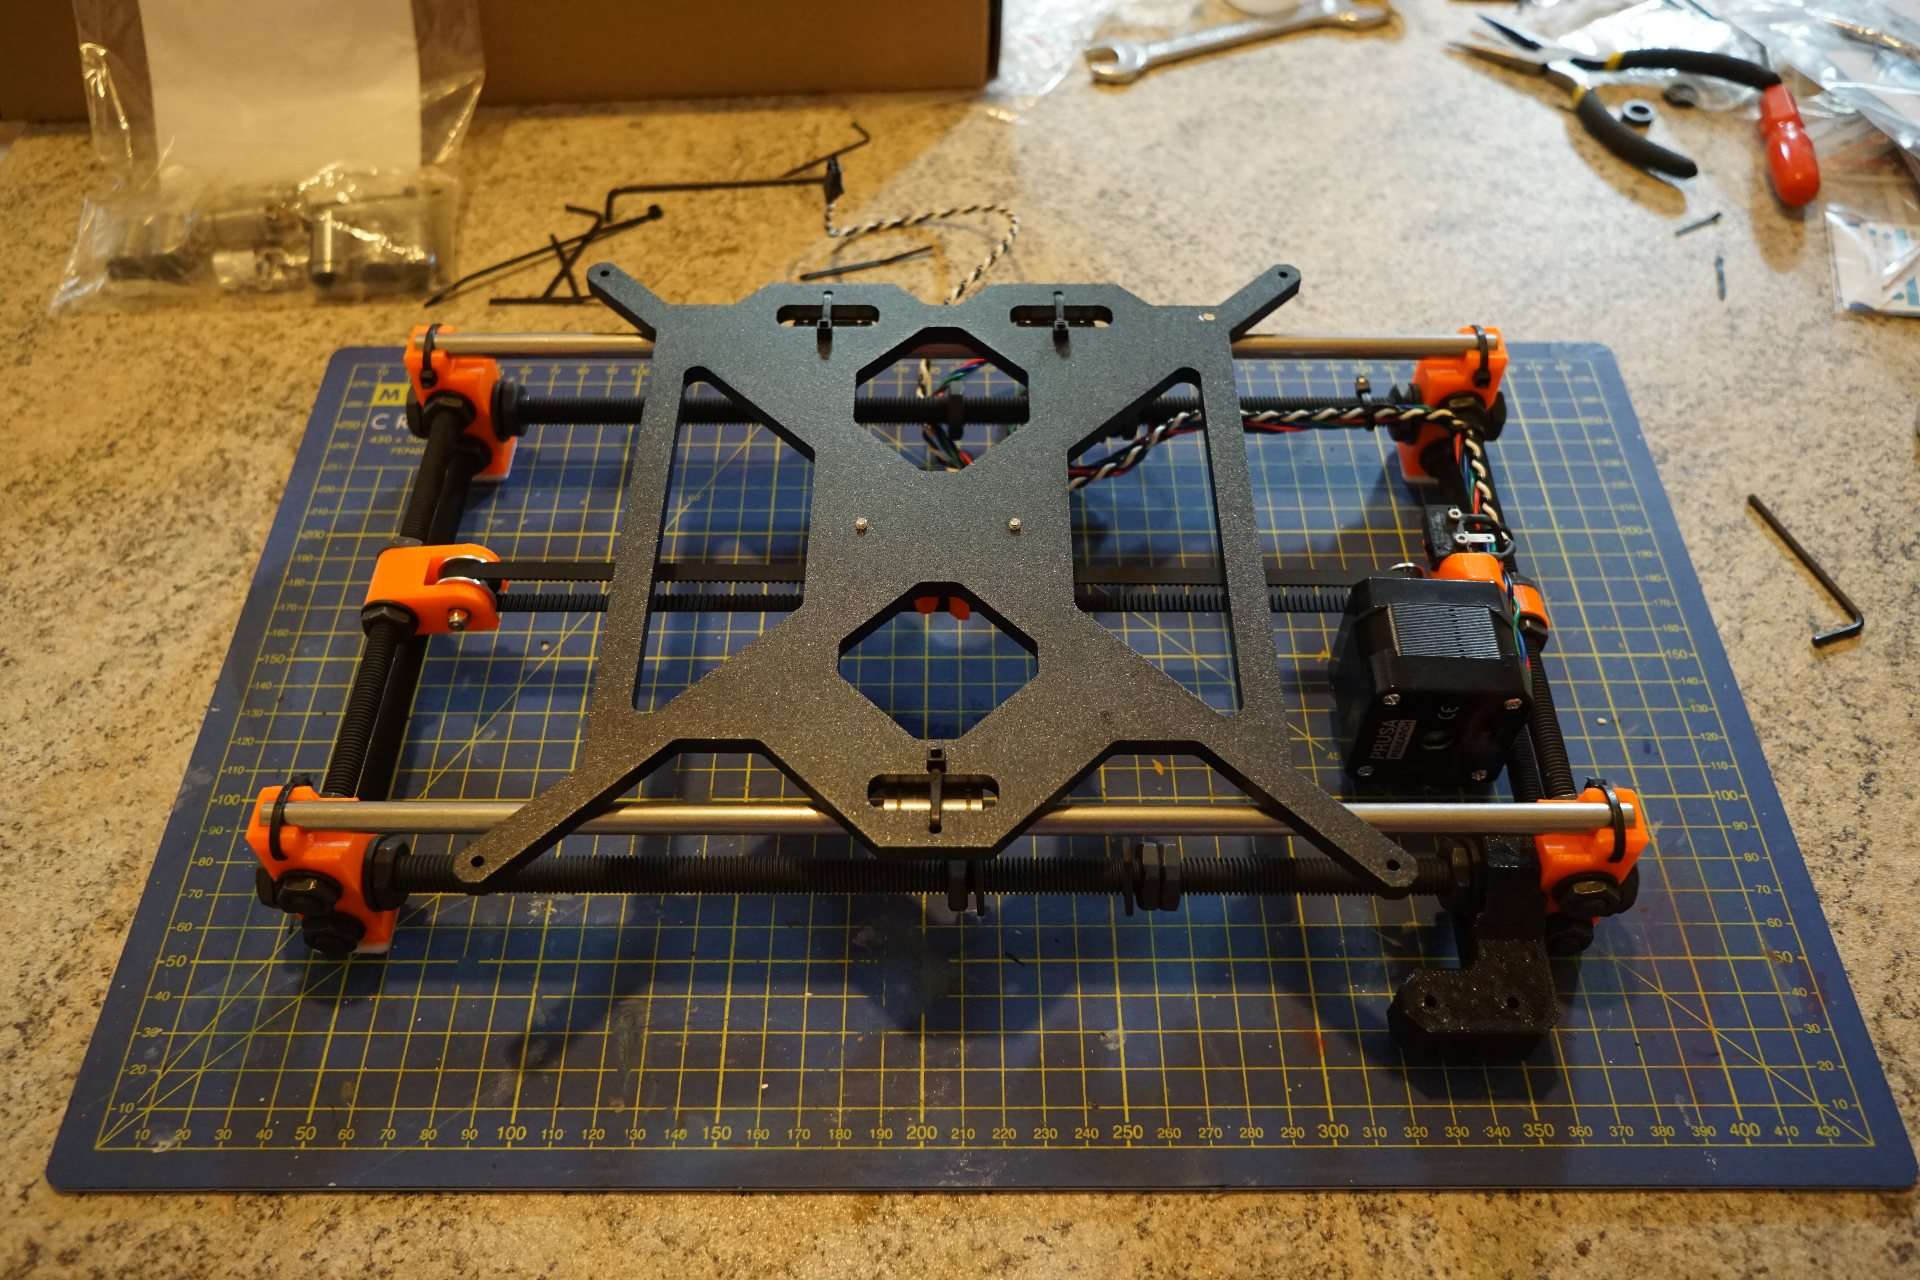 First Steps In 3d Printing With An Original Prusa I3 Mk Ii